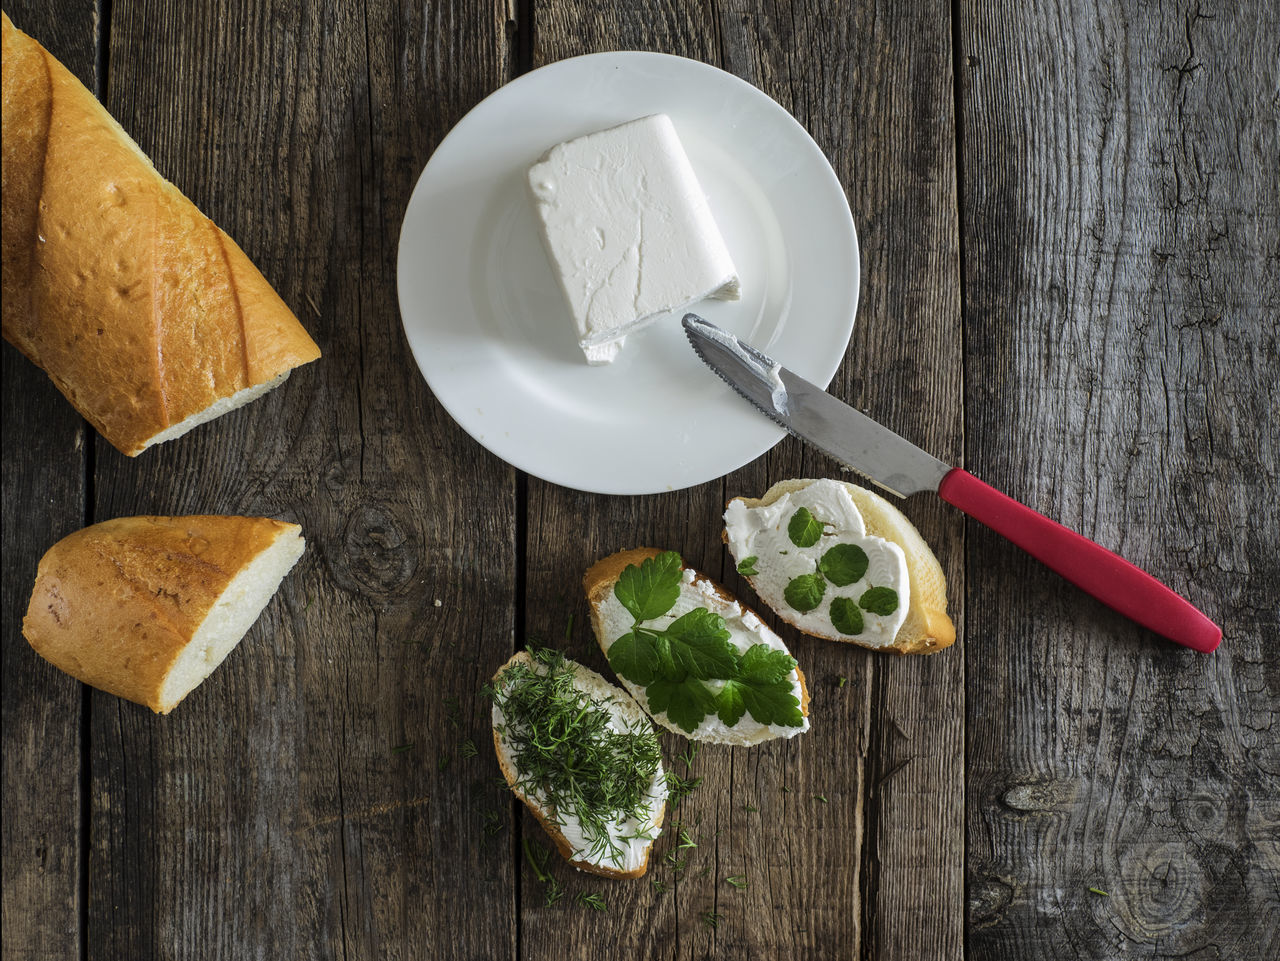 bruschetta with feta cheese and chopped spicy herbs on an old wooden weathered table Background Bread Bruschetta Cheese Chopped Close-up Feta Food Freshness Herbs Homemade Indoors  Meal No People Old Planks Spicy Studio Shot Table Weathered Wood - Material Wooden